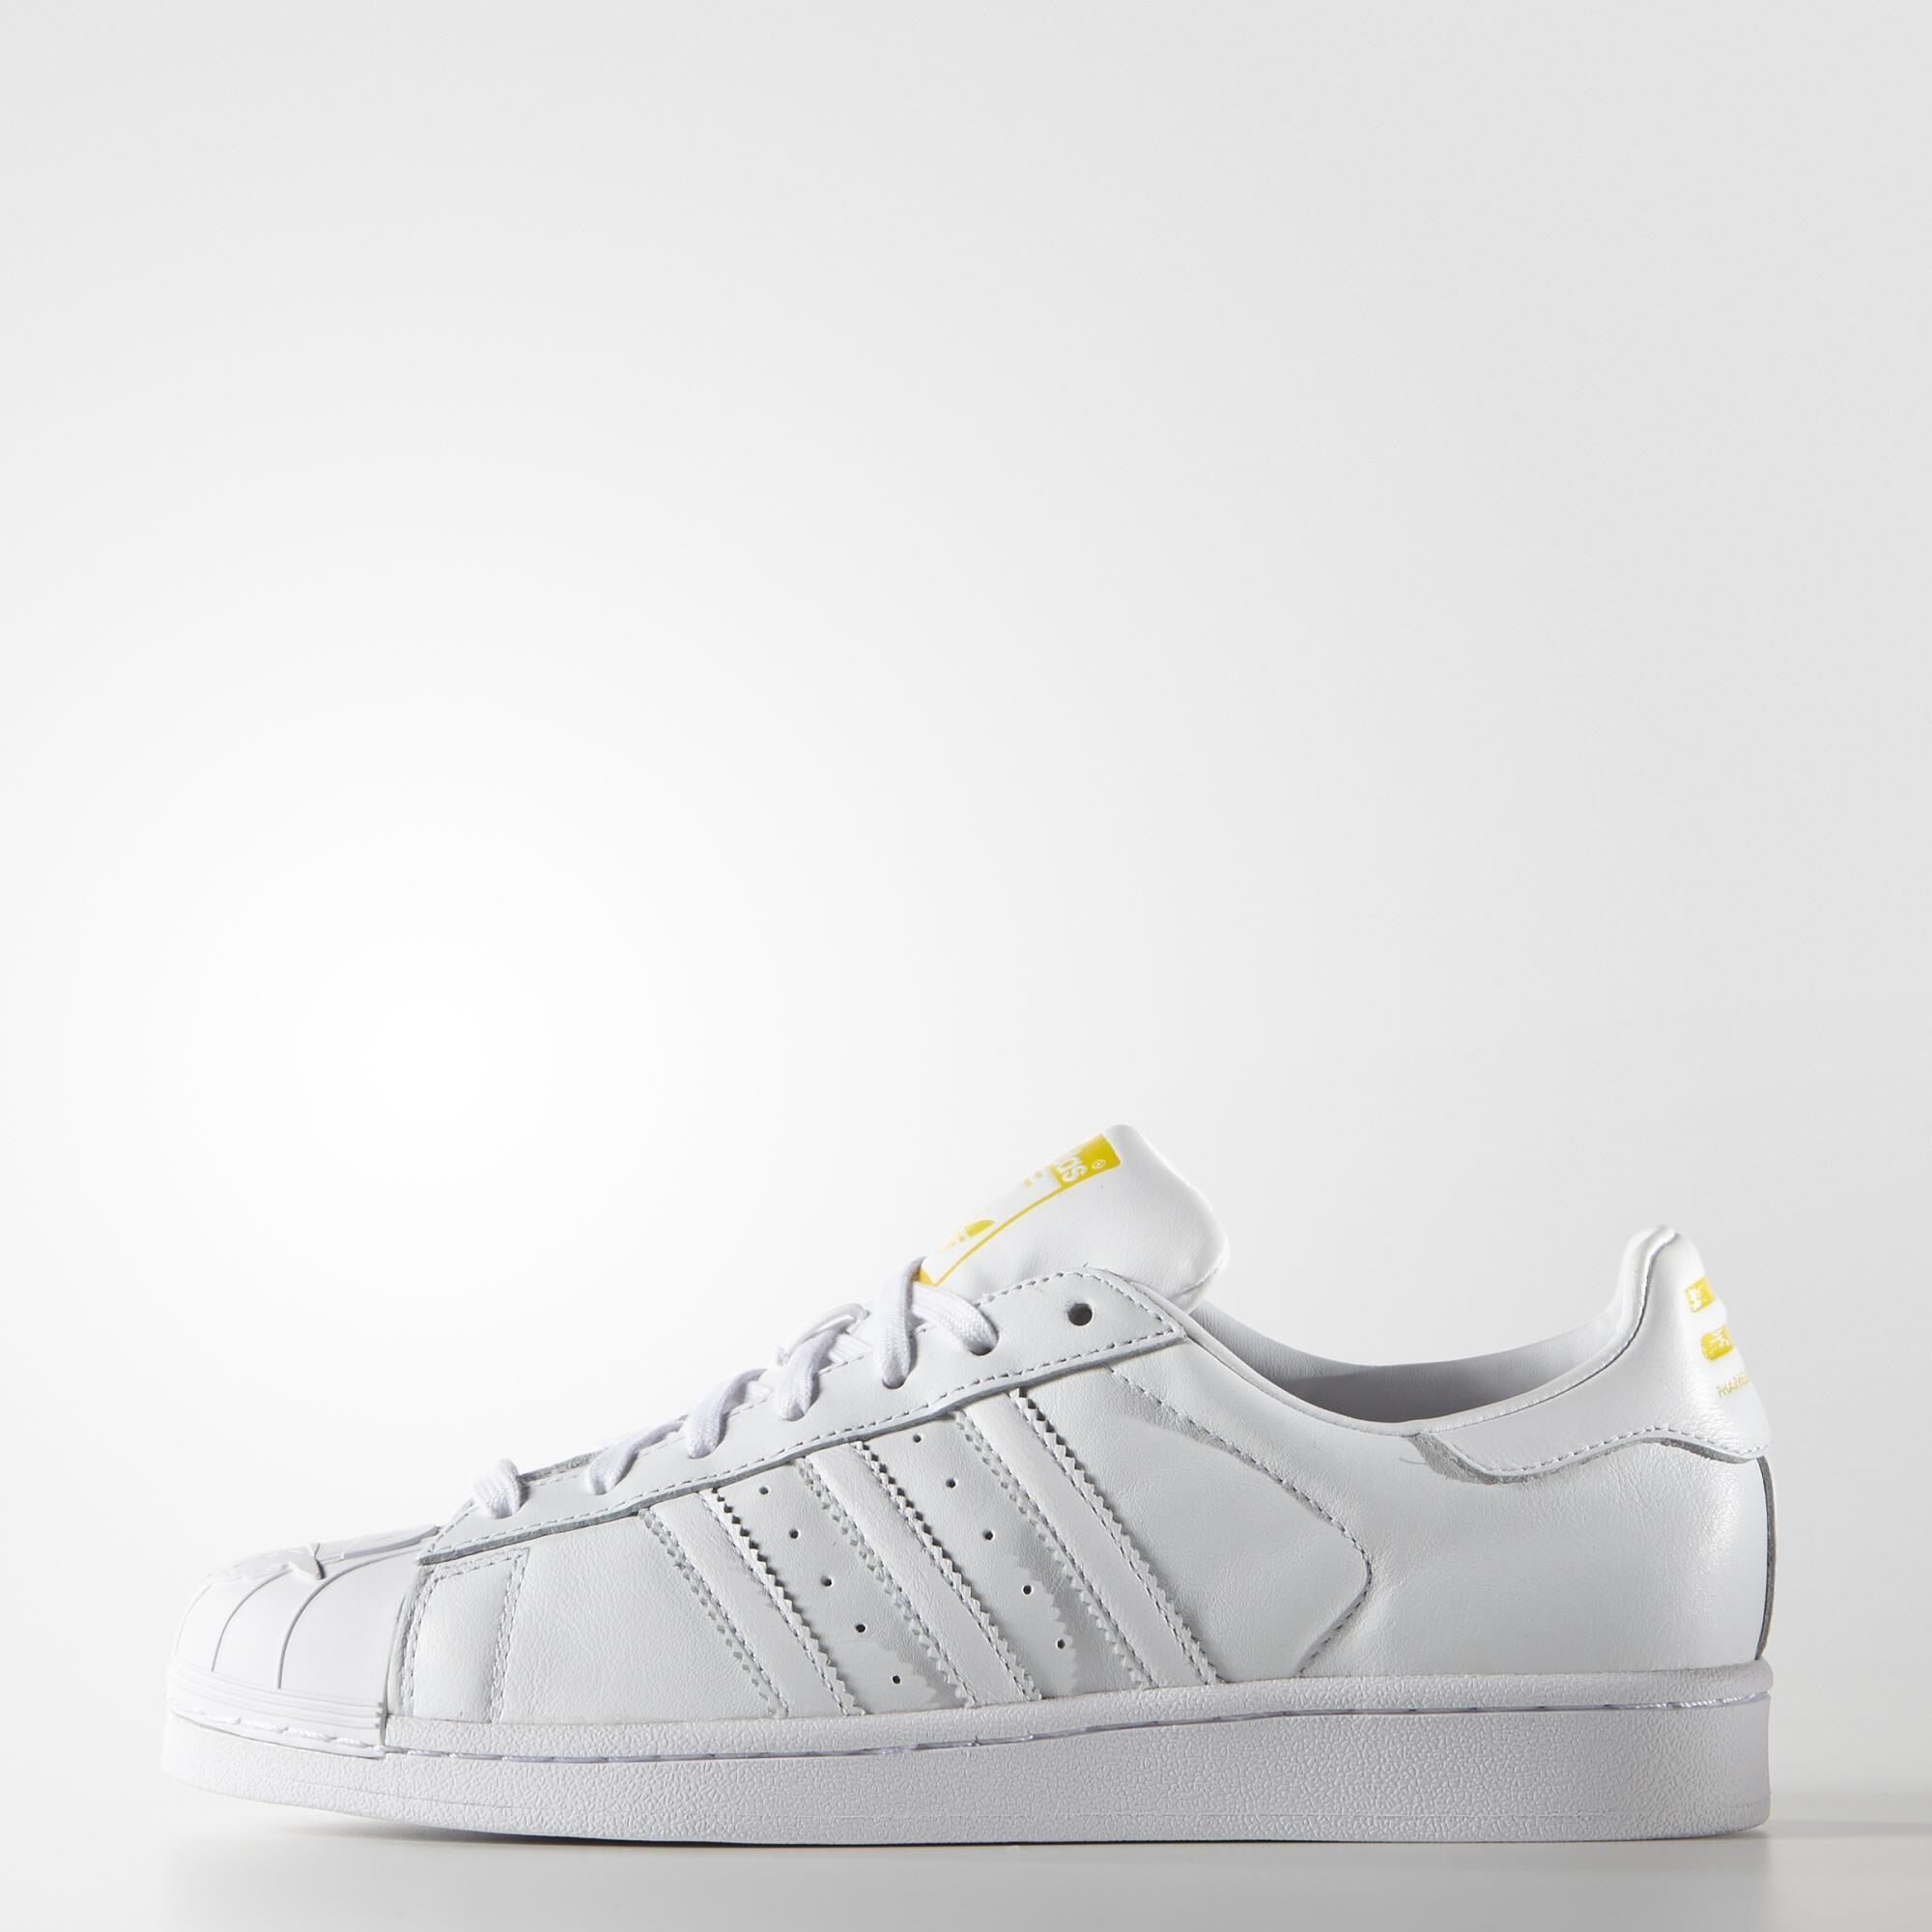 adyuka adidas superstar pharrell supershell schuhe, weiße adidas - usa